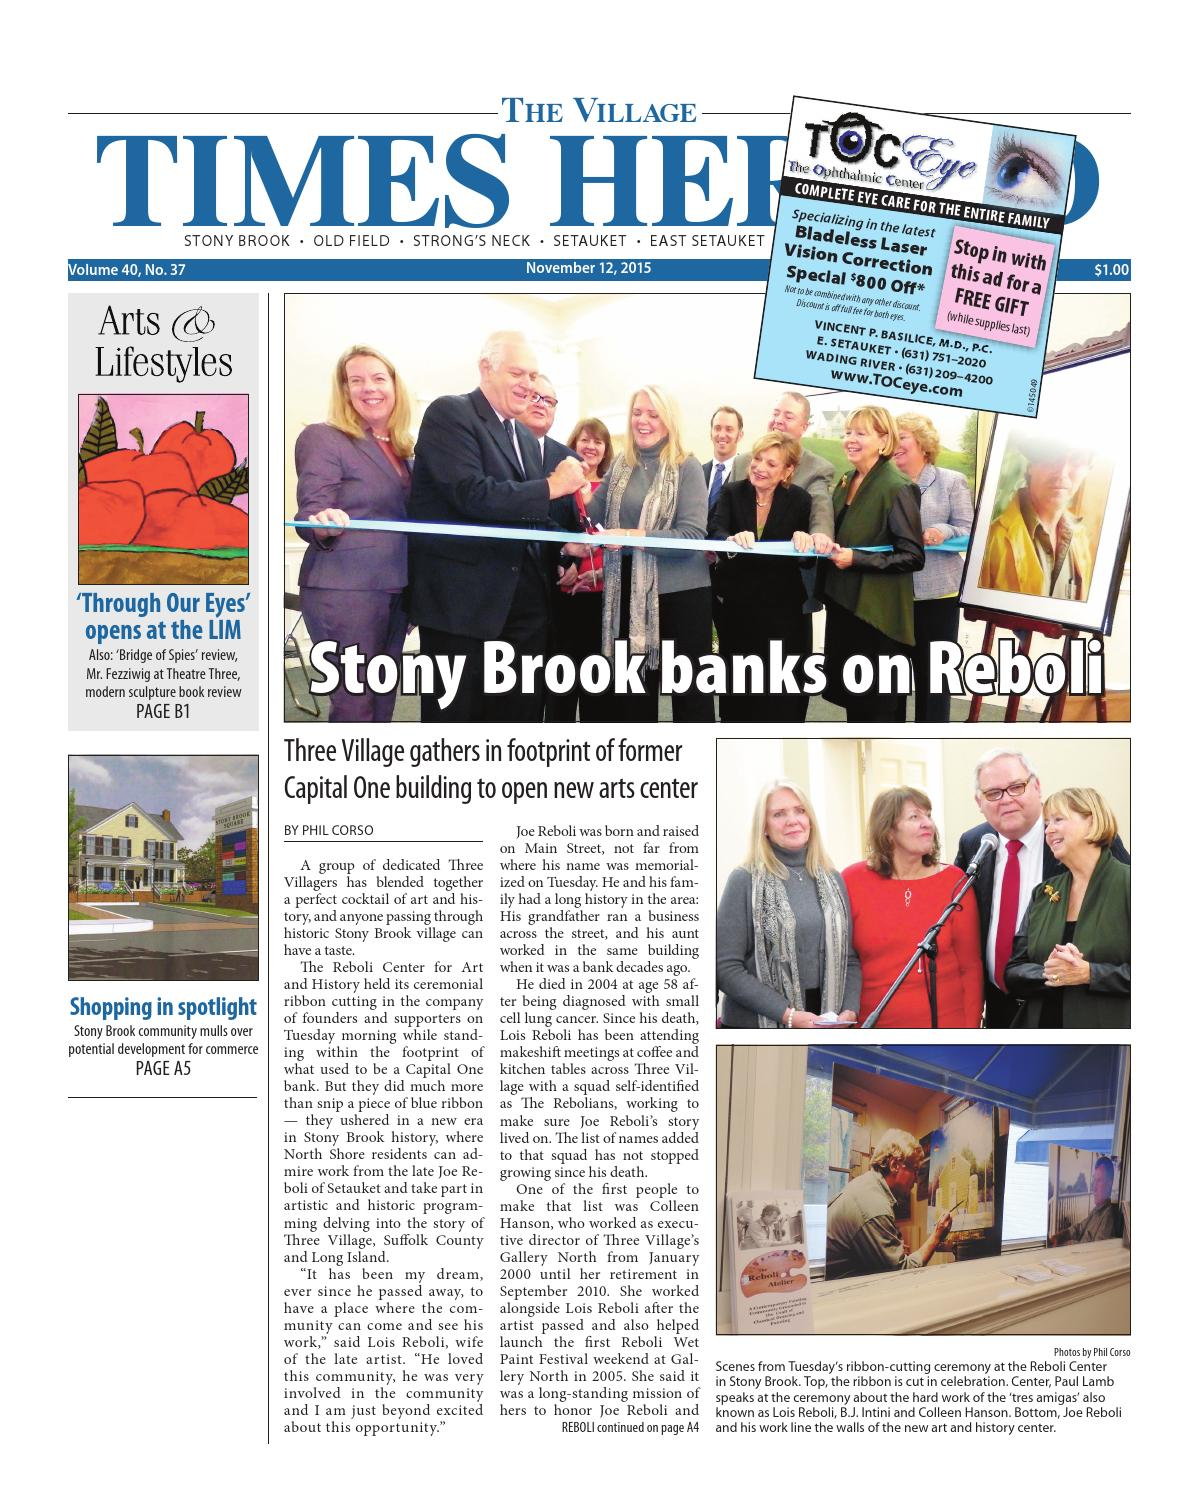 The Village Times Herald - November 12, 2015 by TBR News Media - issuu